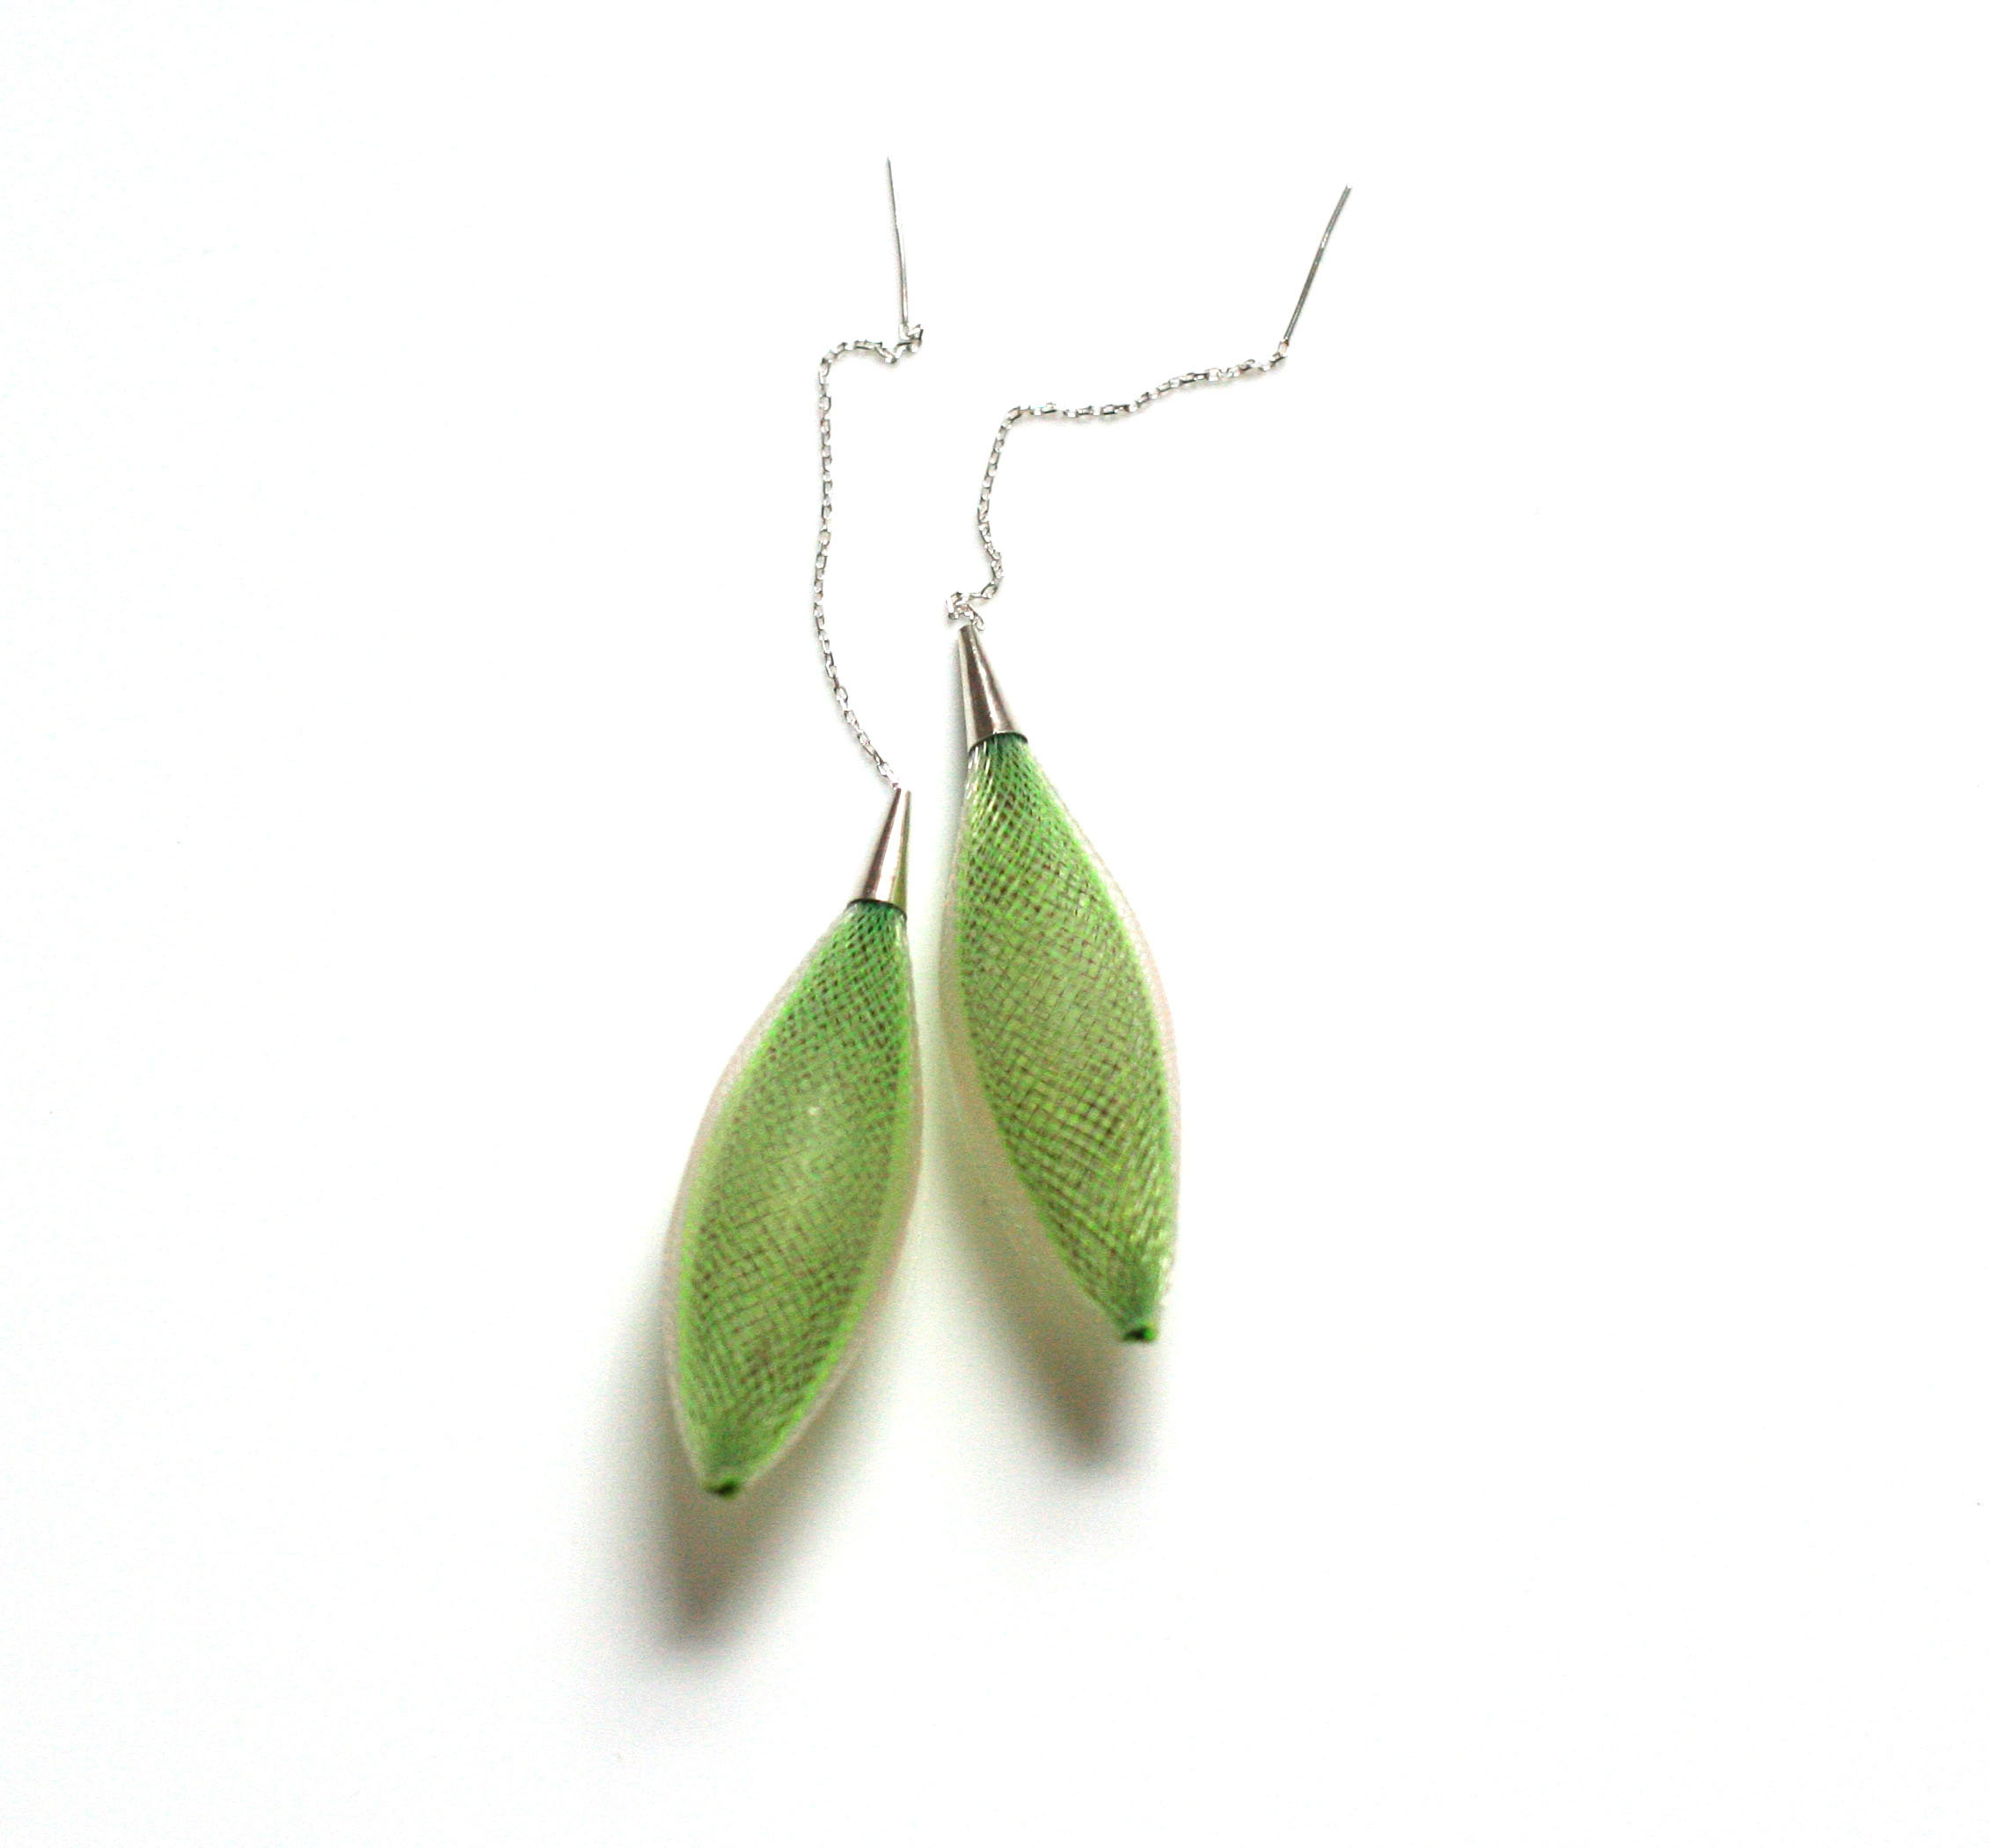 Nylon Earrings 6